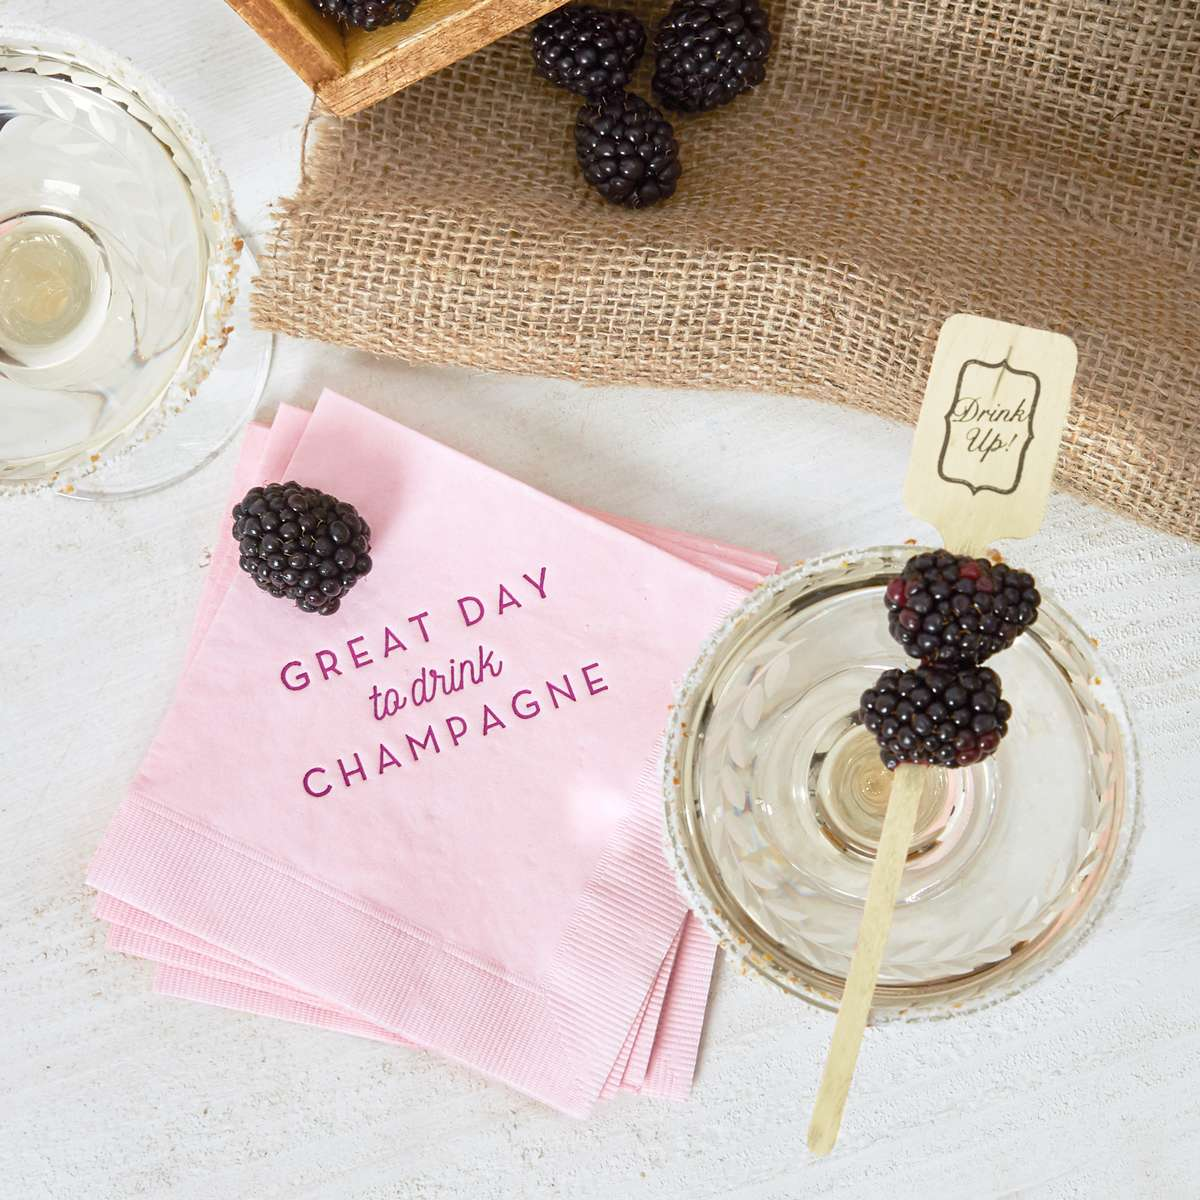 blackberry champagne with personalized cocktail napkins